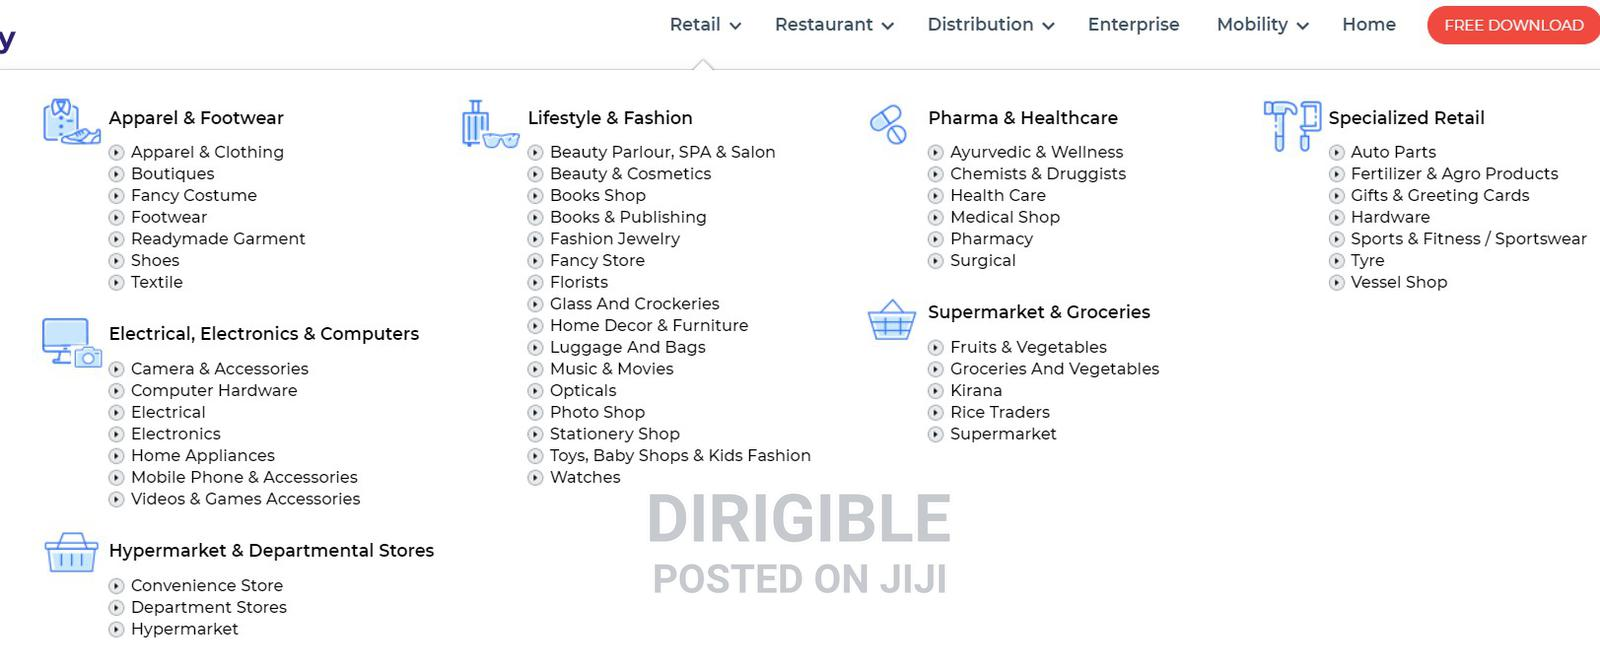 Gofrugal POS Software For Retail,Restaurant,Distributions